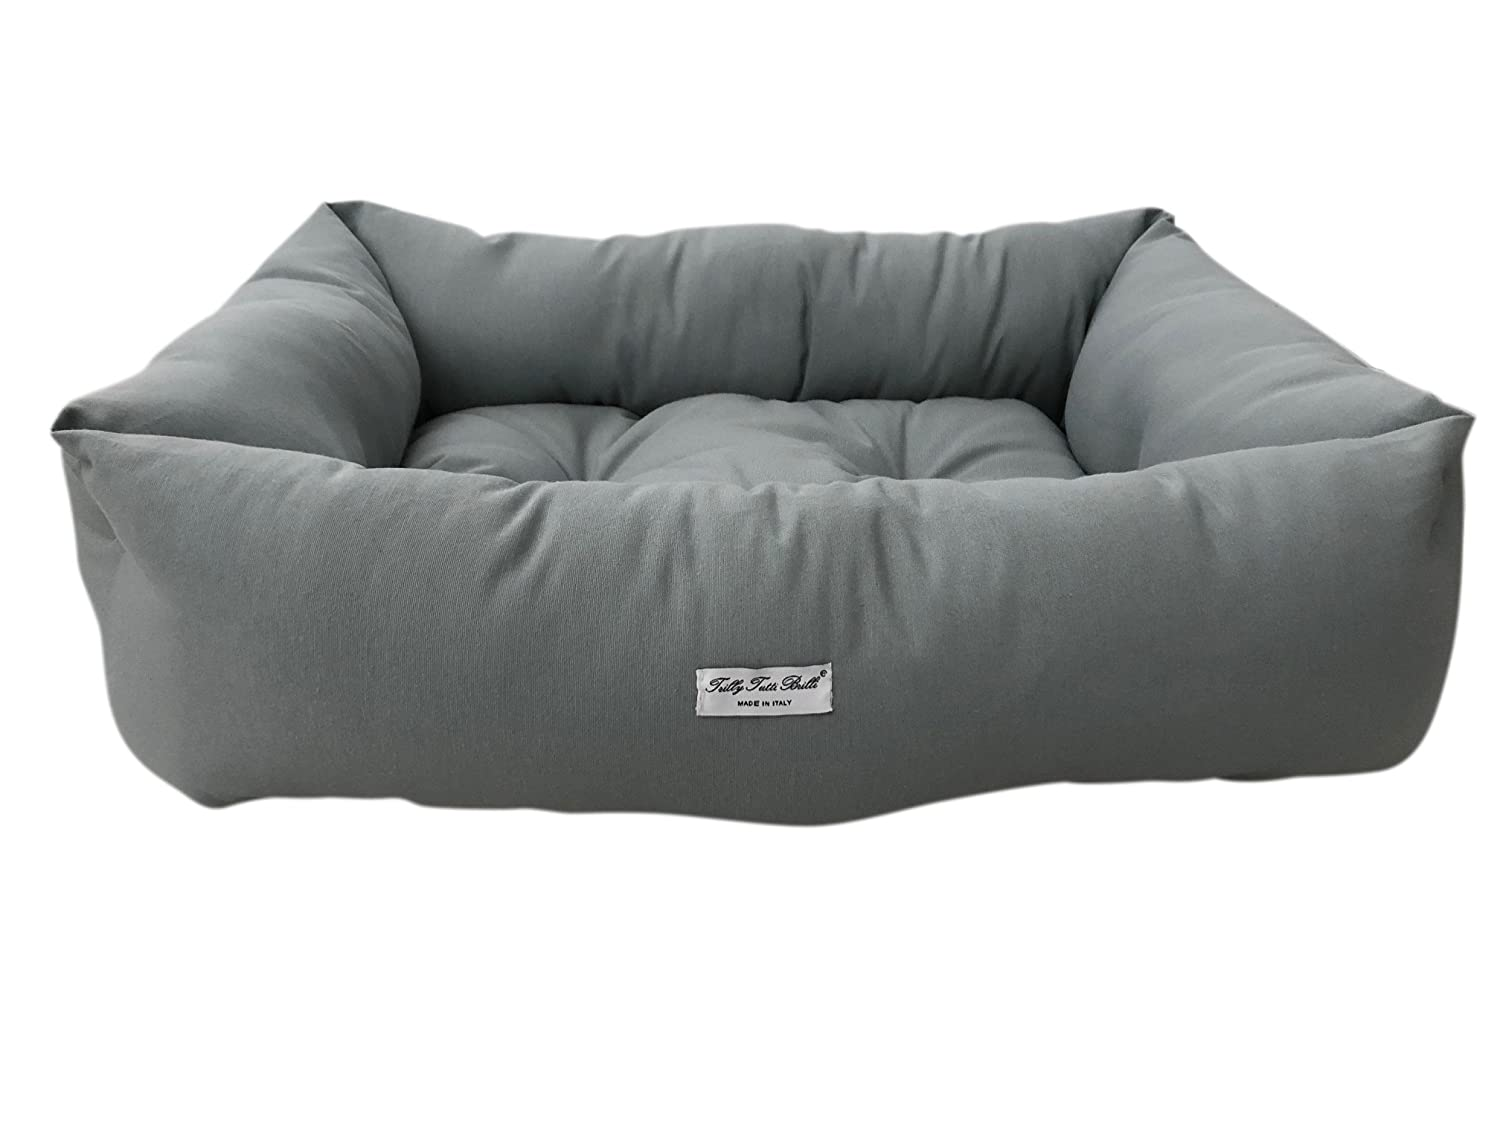 Trilly tutti Brilli Akane Dog's Bed, Dark Grey, Number 60